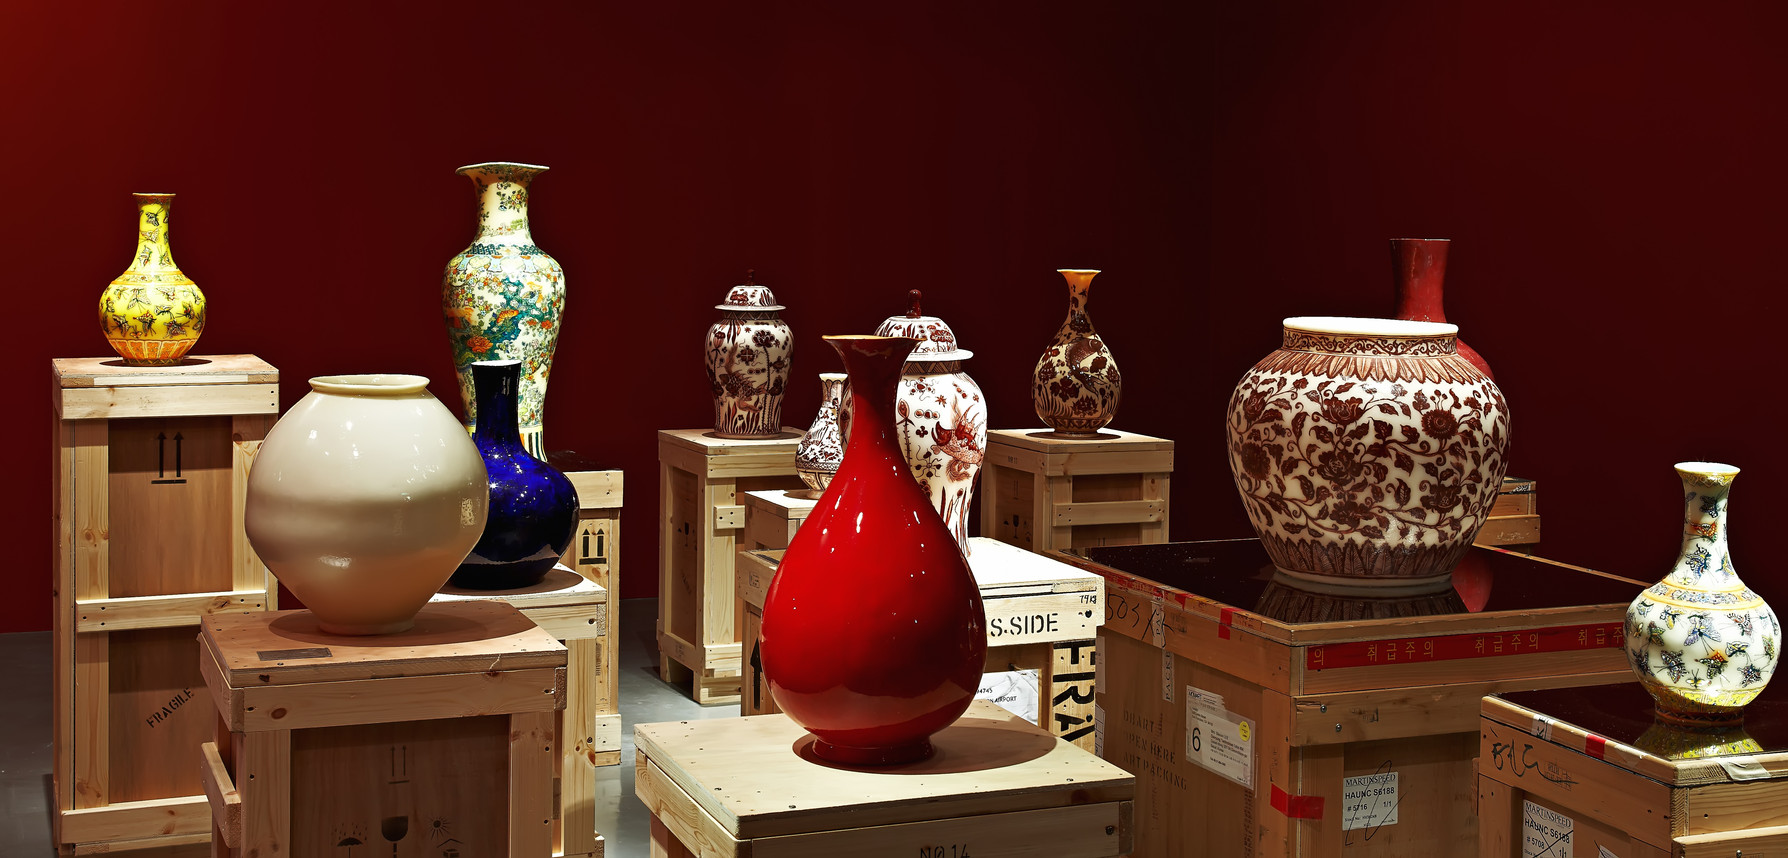 Installation view, Translation:The Epic Archive, National Museum of Modern and Contemporary Art